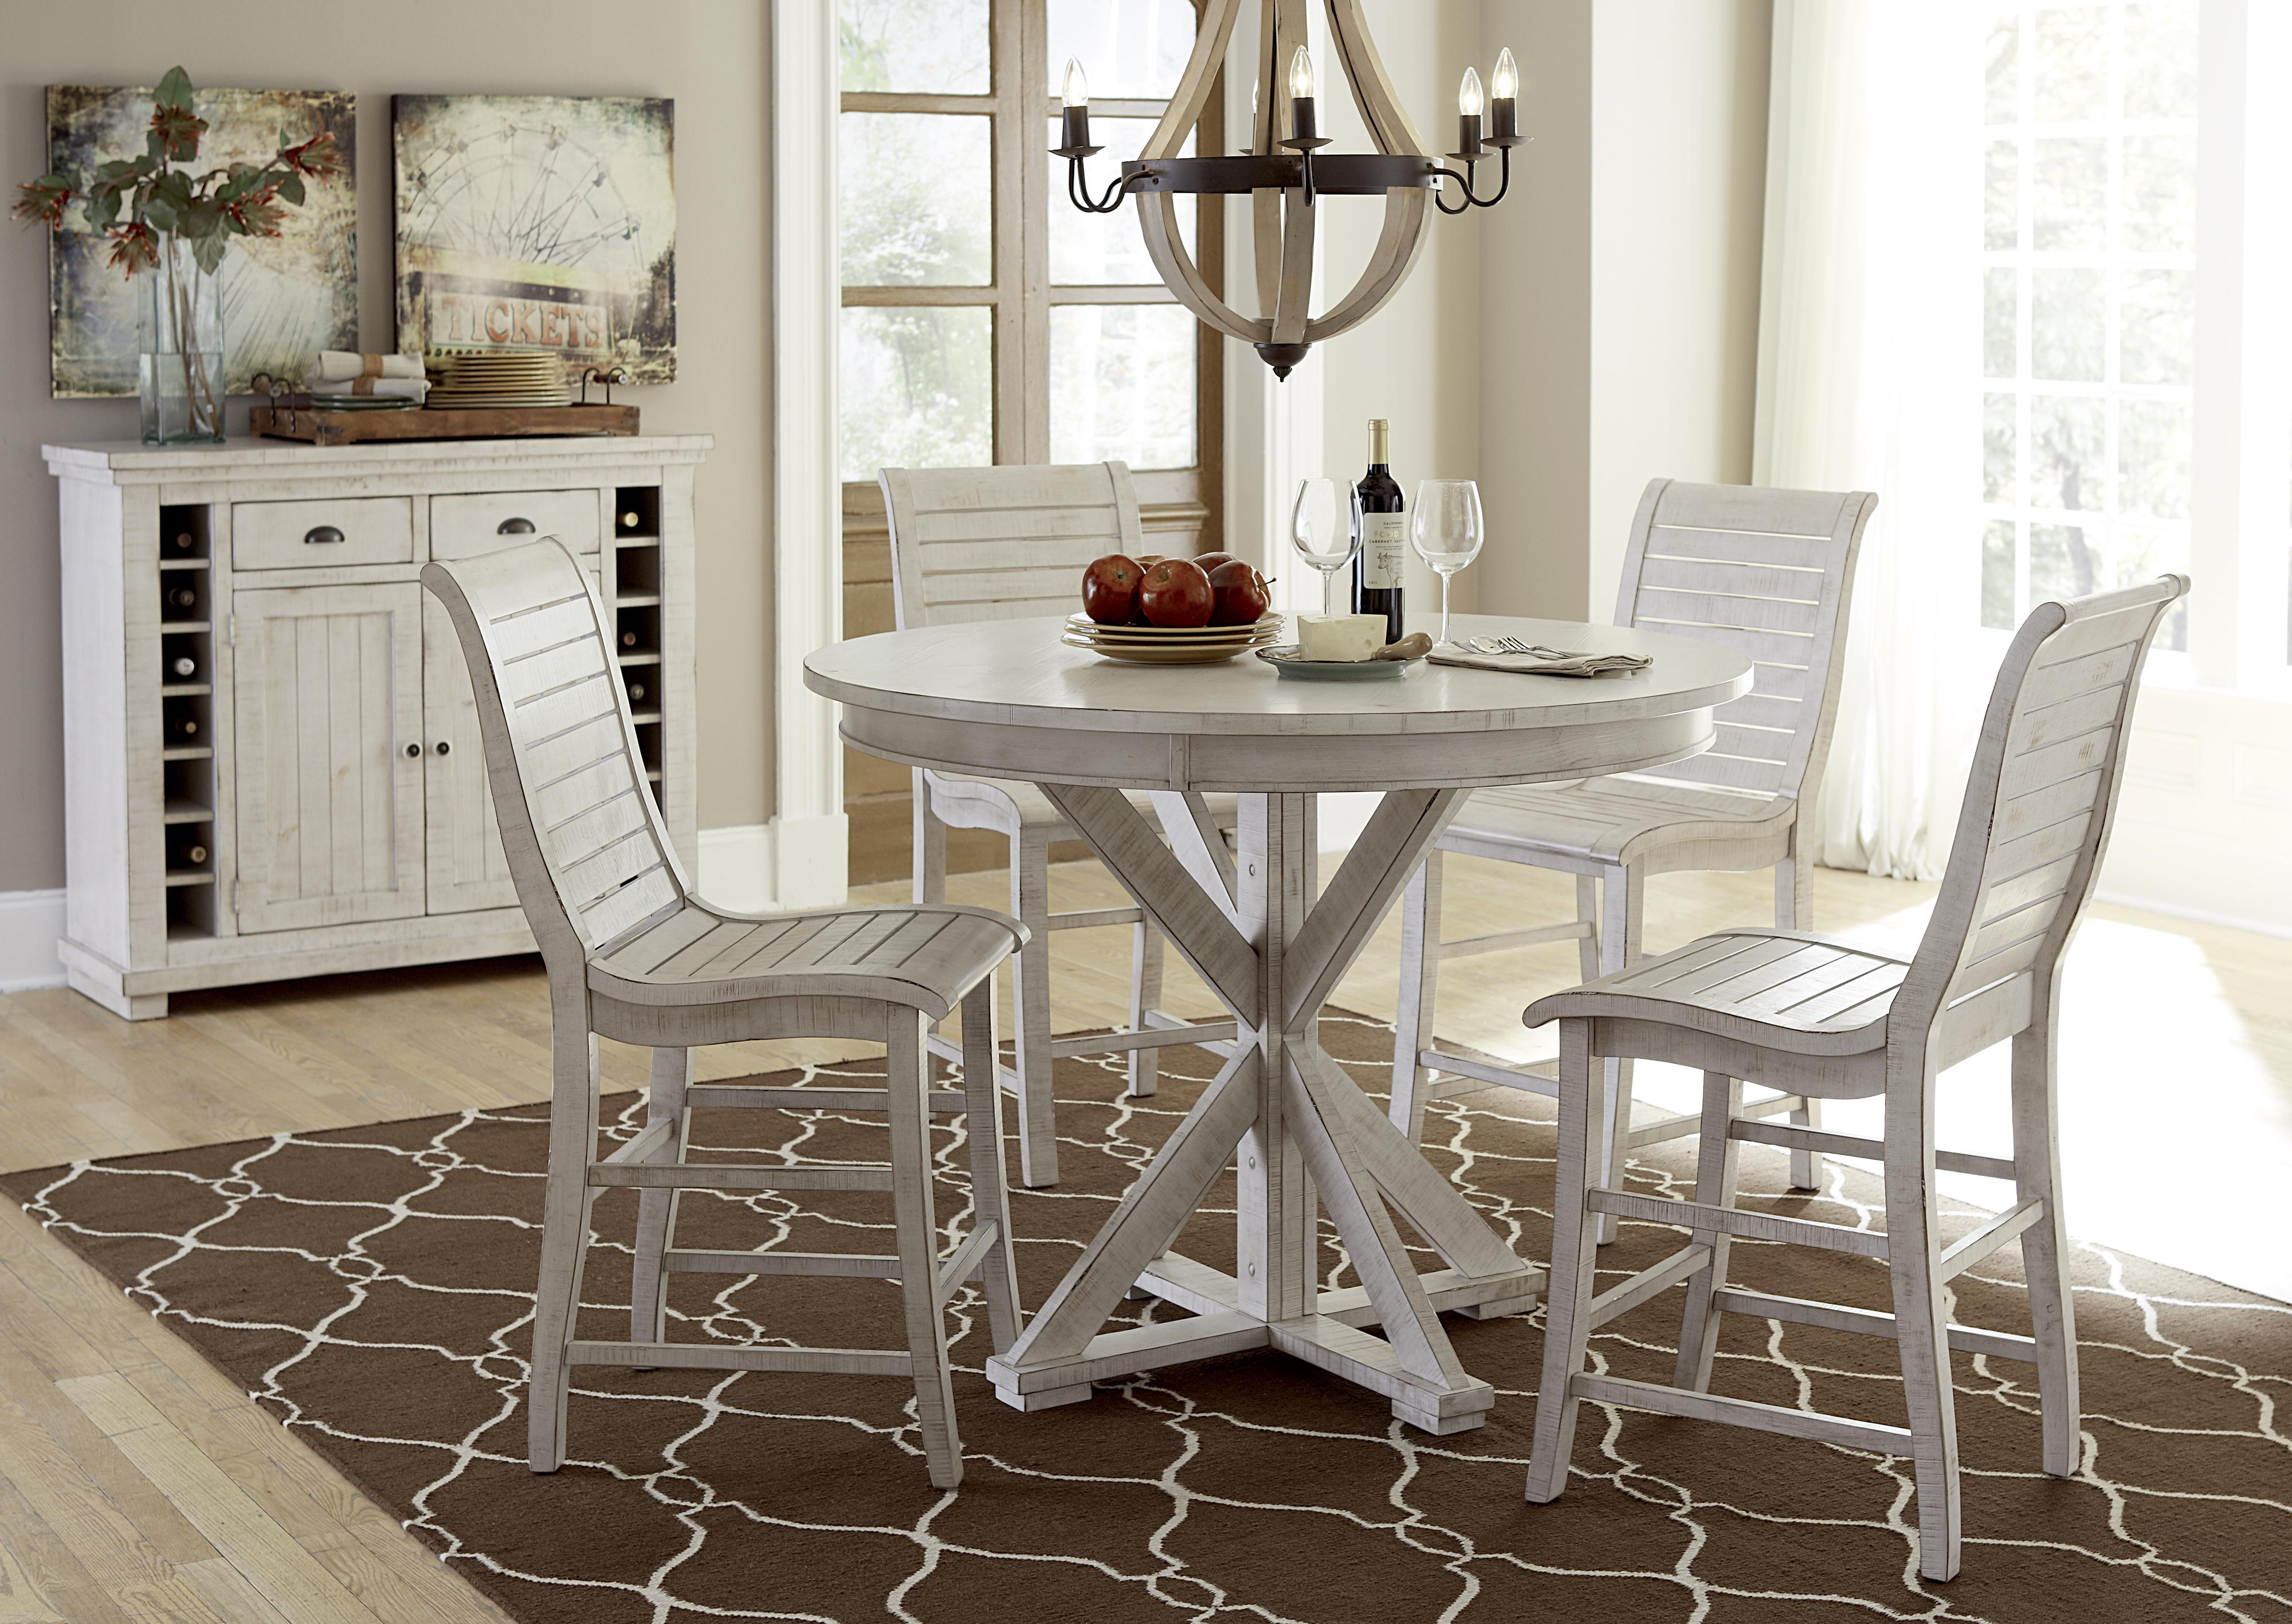 Willow Dining Casual Dining Room Group by Progressive Furniture at Lindy's Furniture Company